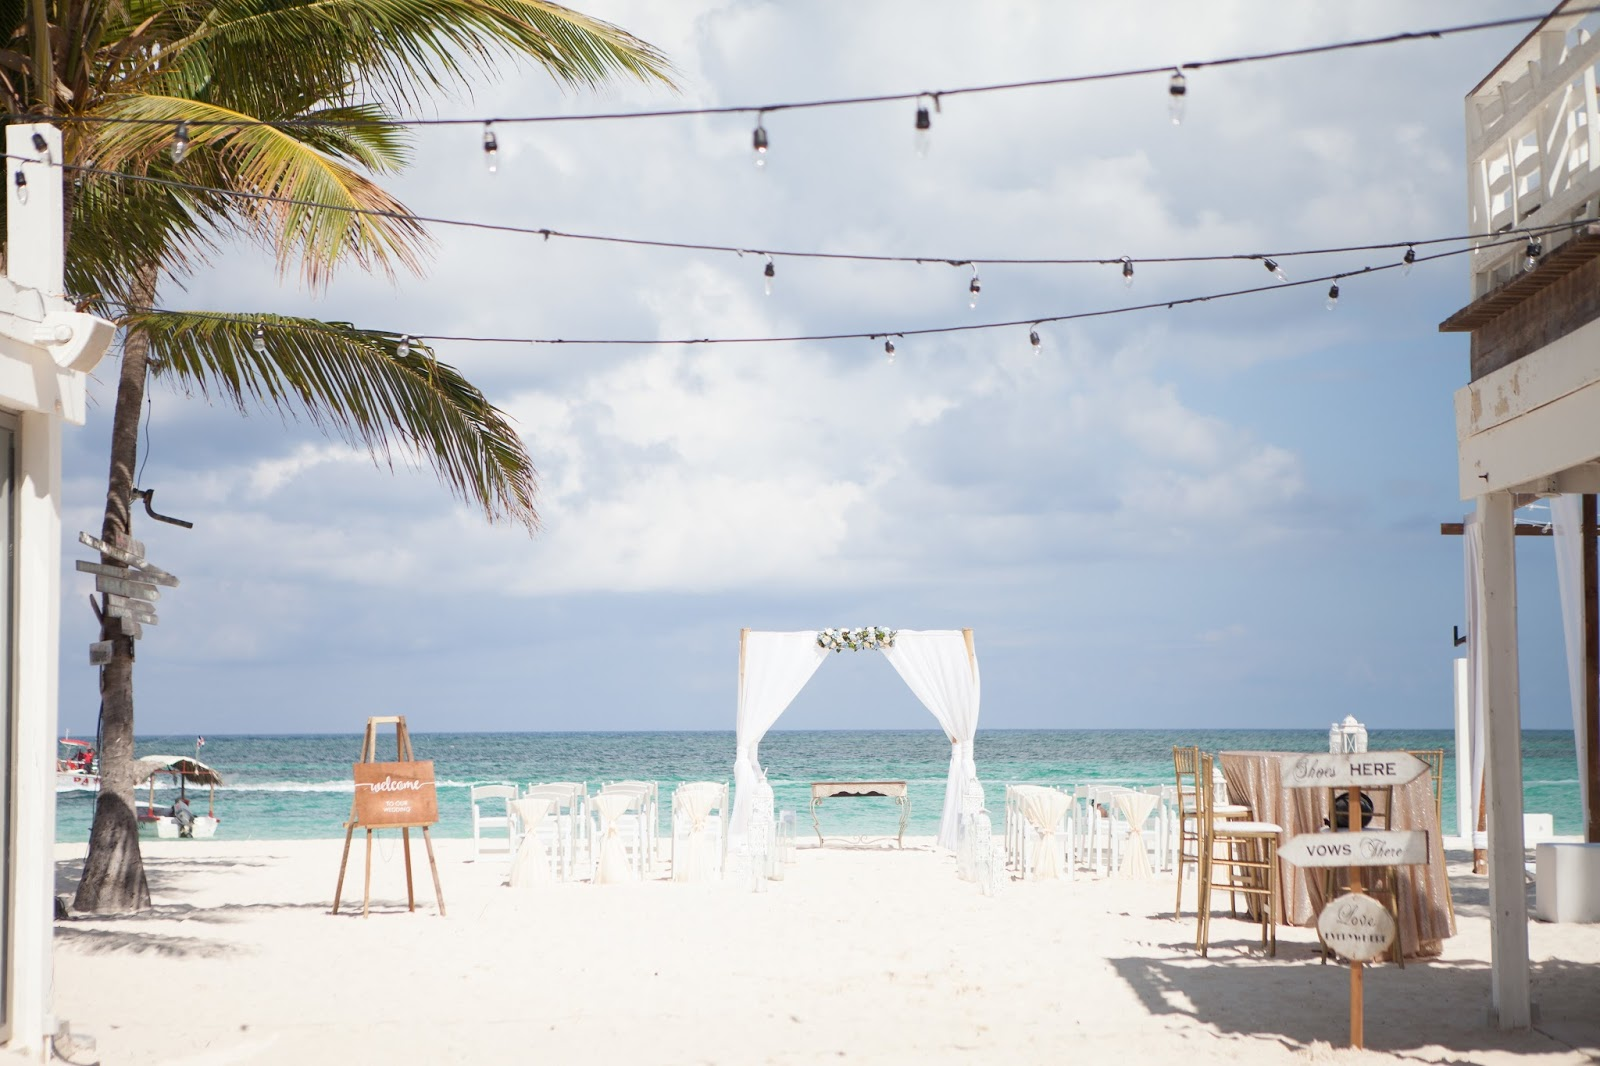 destination wedding planning, destination wedding budget, wedding budget advice, wedding planning blogger, punta cana bride, punta cana wedding, punta cana wedding budget, a beauty and the business, Karina Jensen Photography , karina jensen, karina wedding photographer